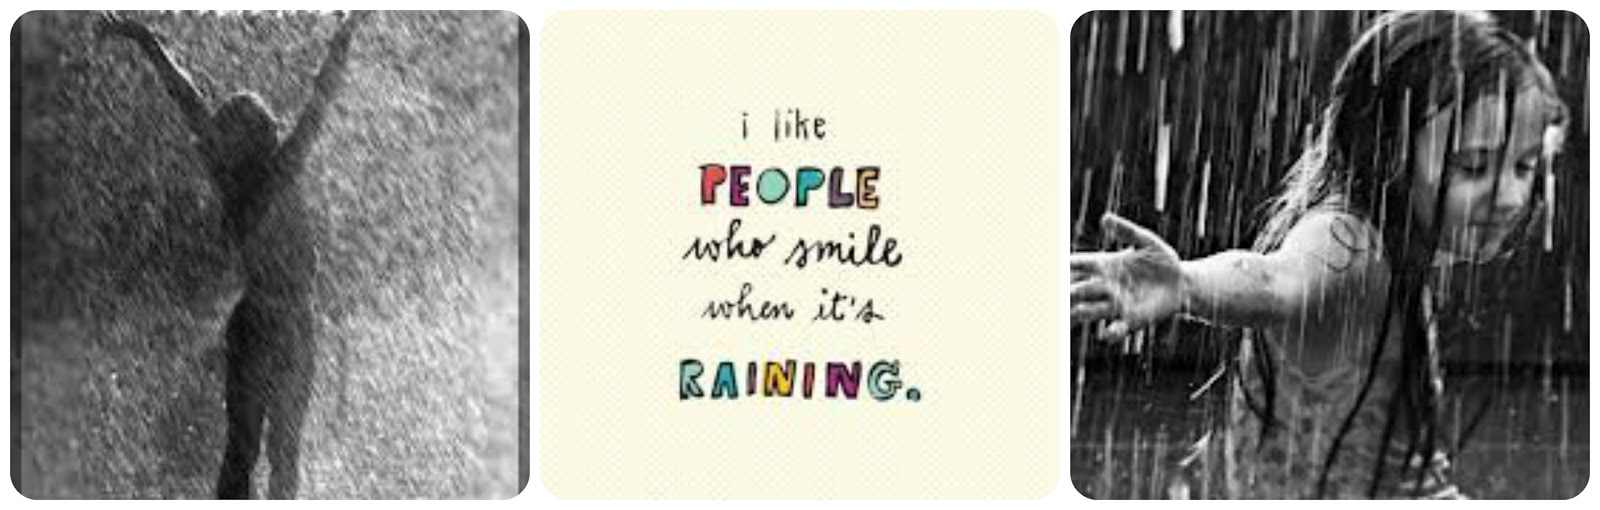 Me gusta la gente que sonríe cuando llueve / I like people who smile when it's raining